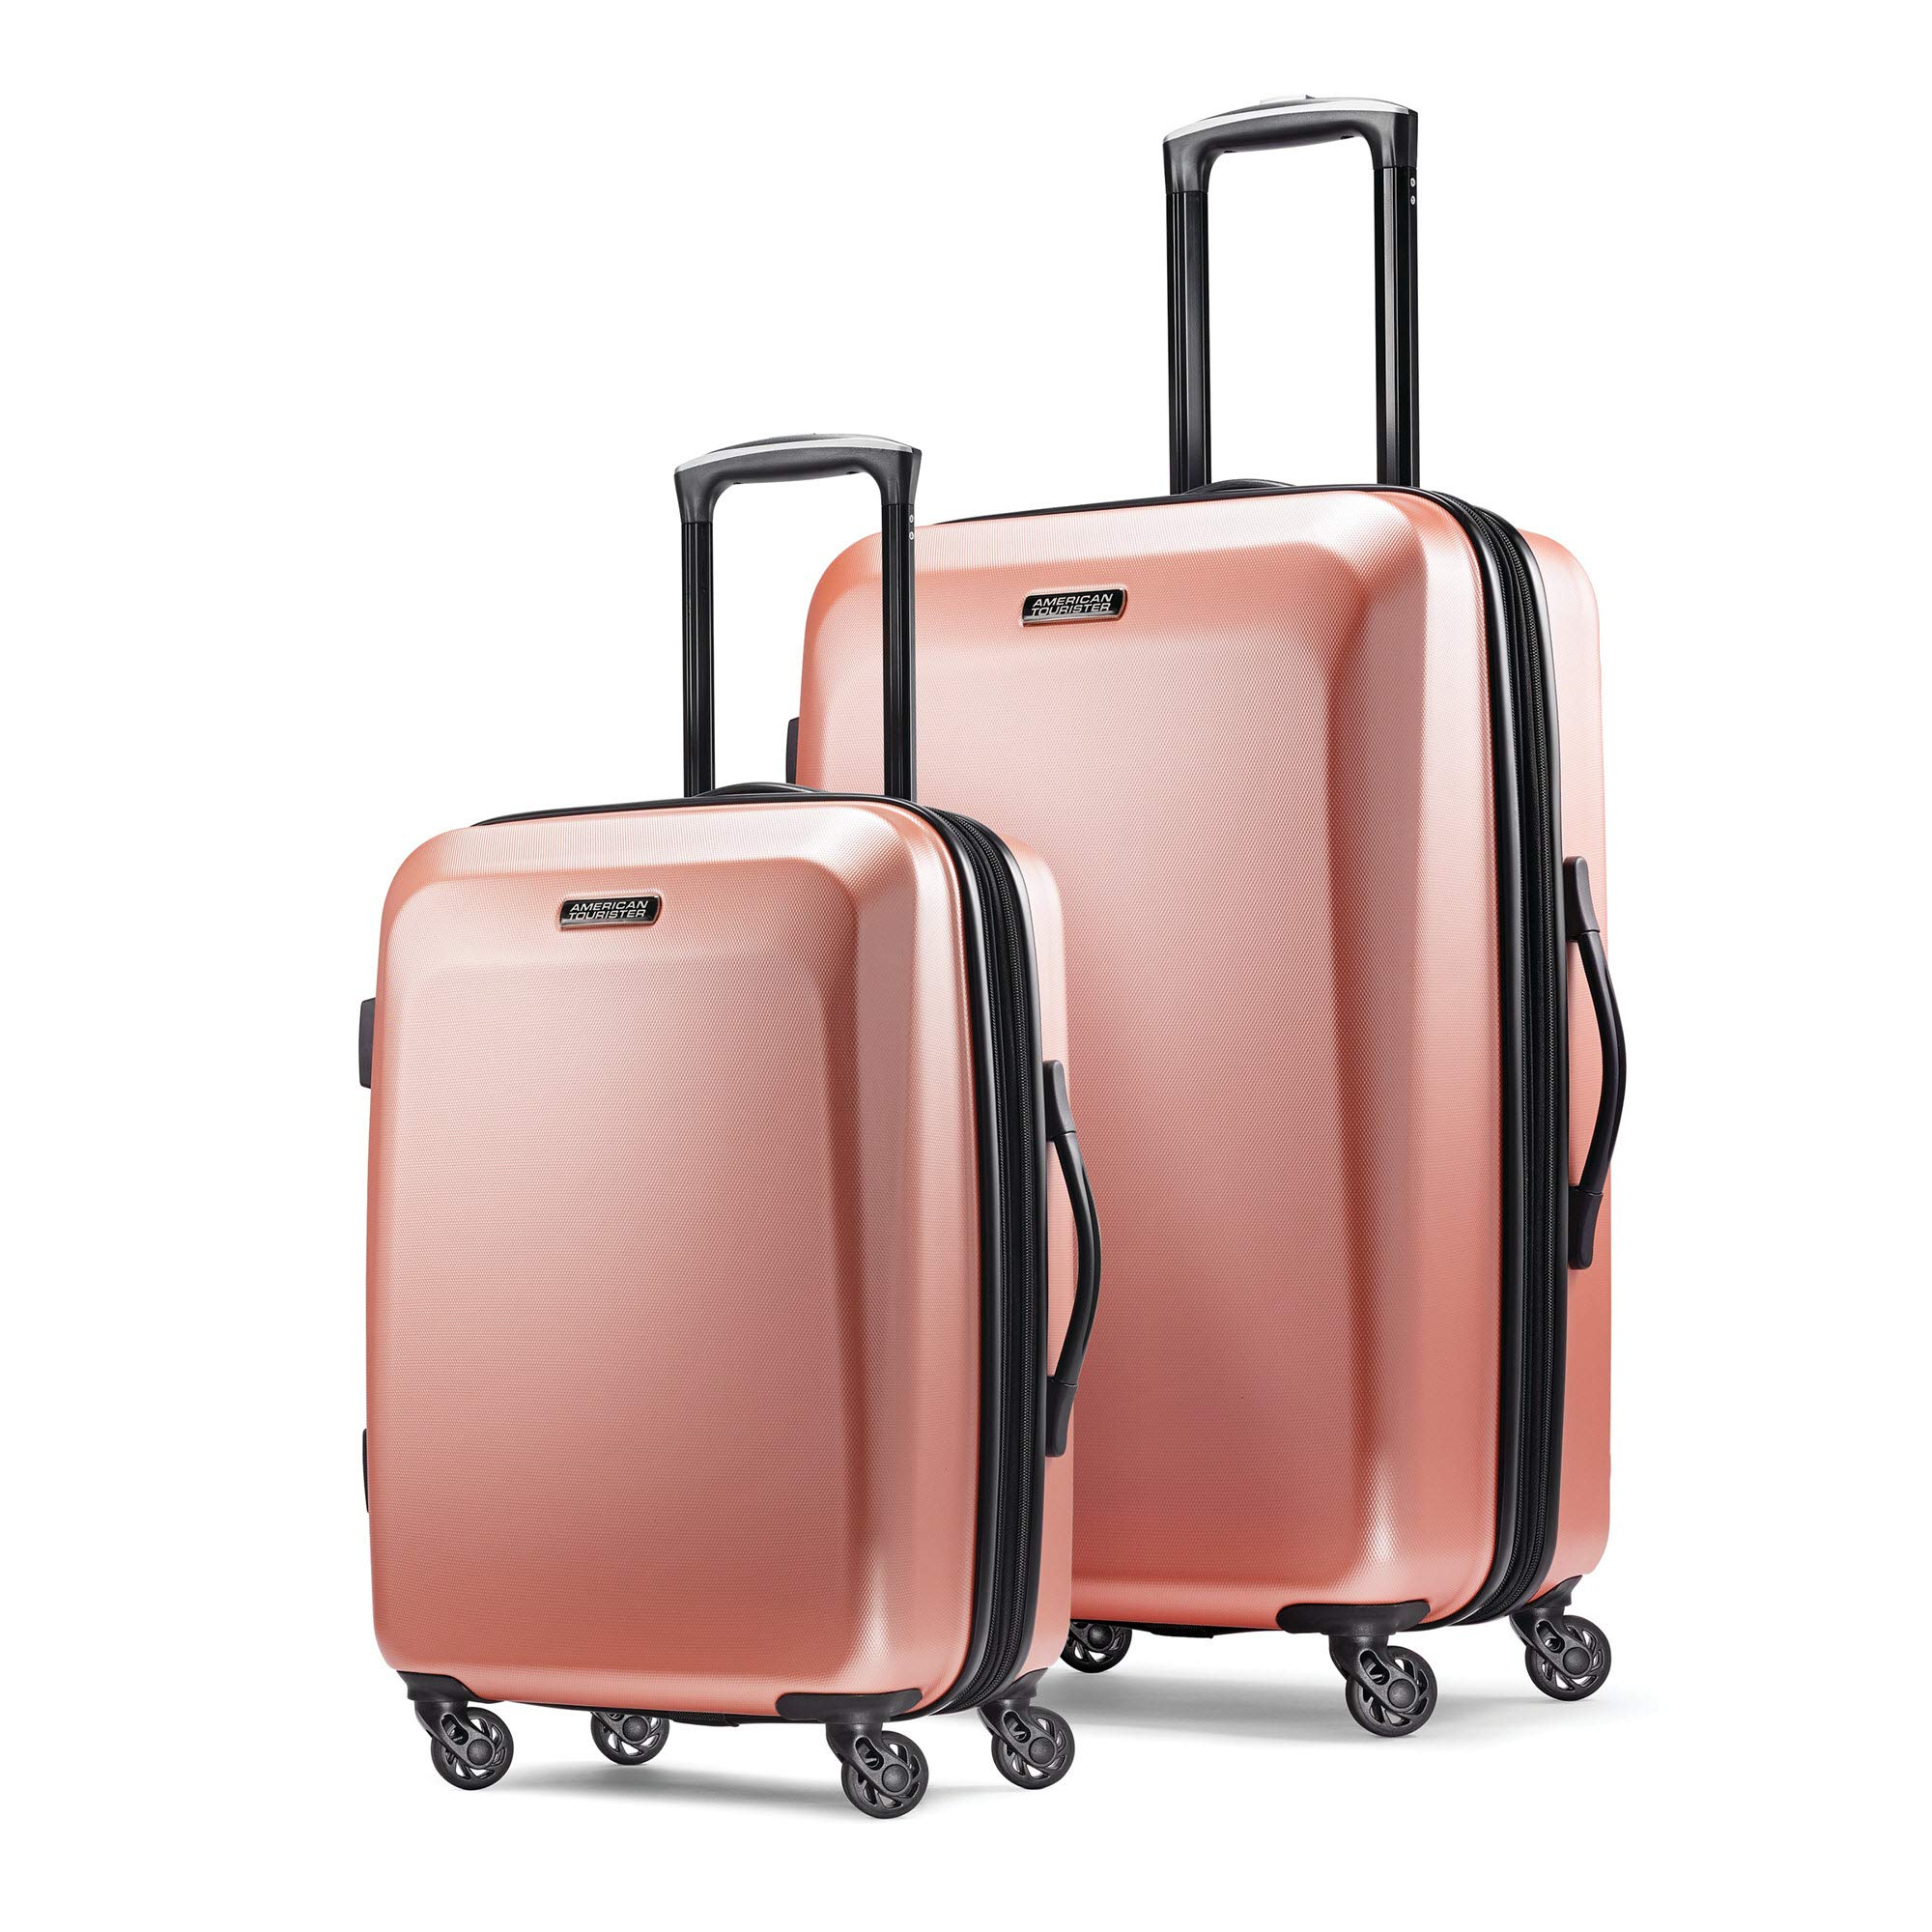 American Tourister 2-Piece Set, Rose Gold by American Tourister